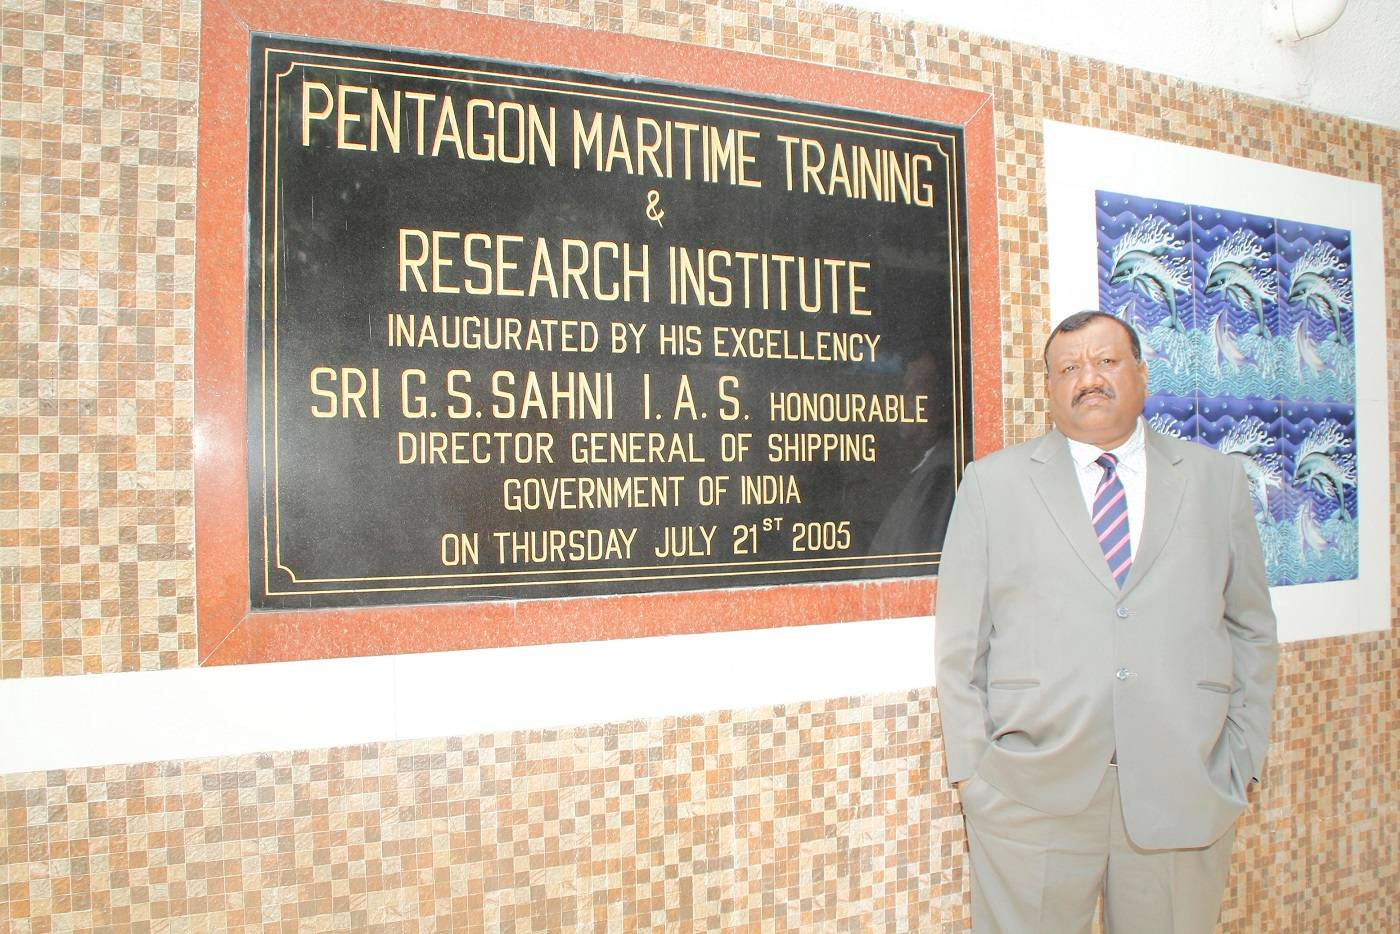 Indian shipping tycoon announces plans for US$10 million maritime college